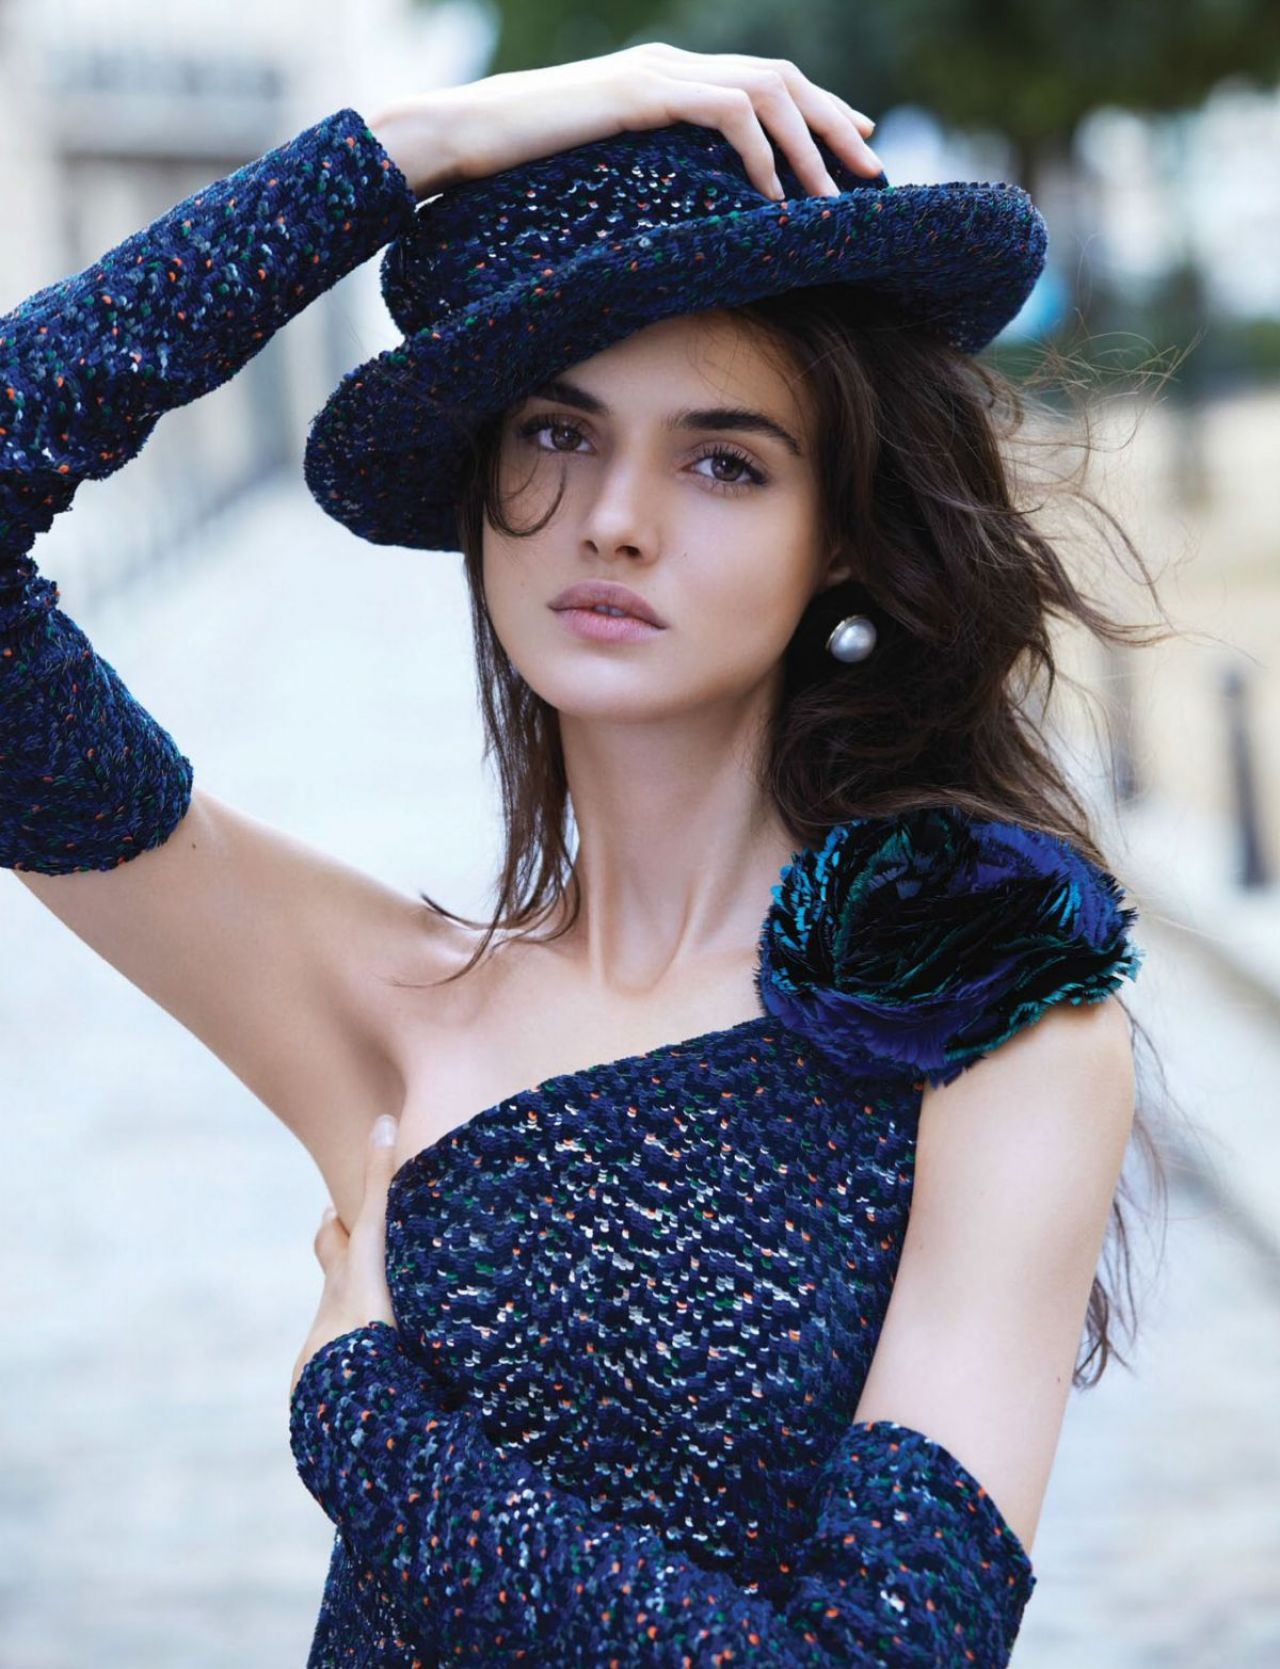 Celebrites Blanca Padilla nudes (51 photo), Topless, Sideboobs, Boobs, lingerie 2017